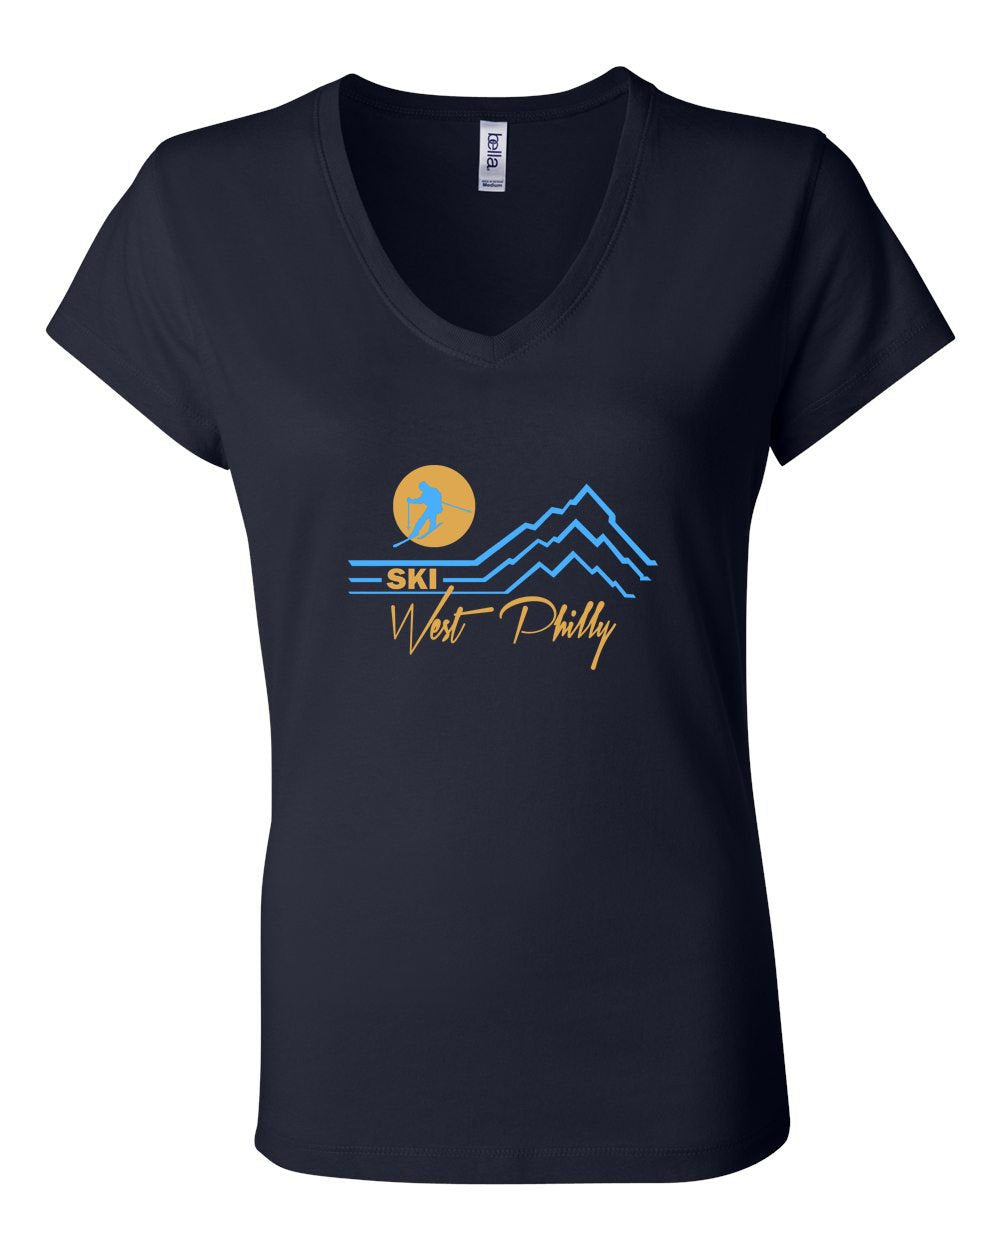 Ski West Philly LADIES Junior Fit V-Neck